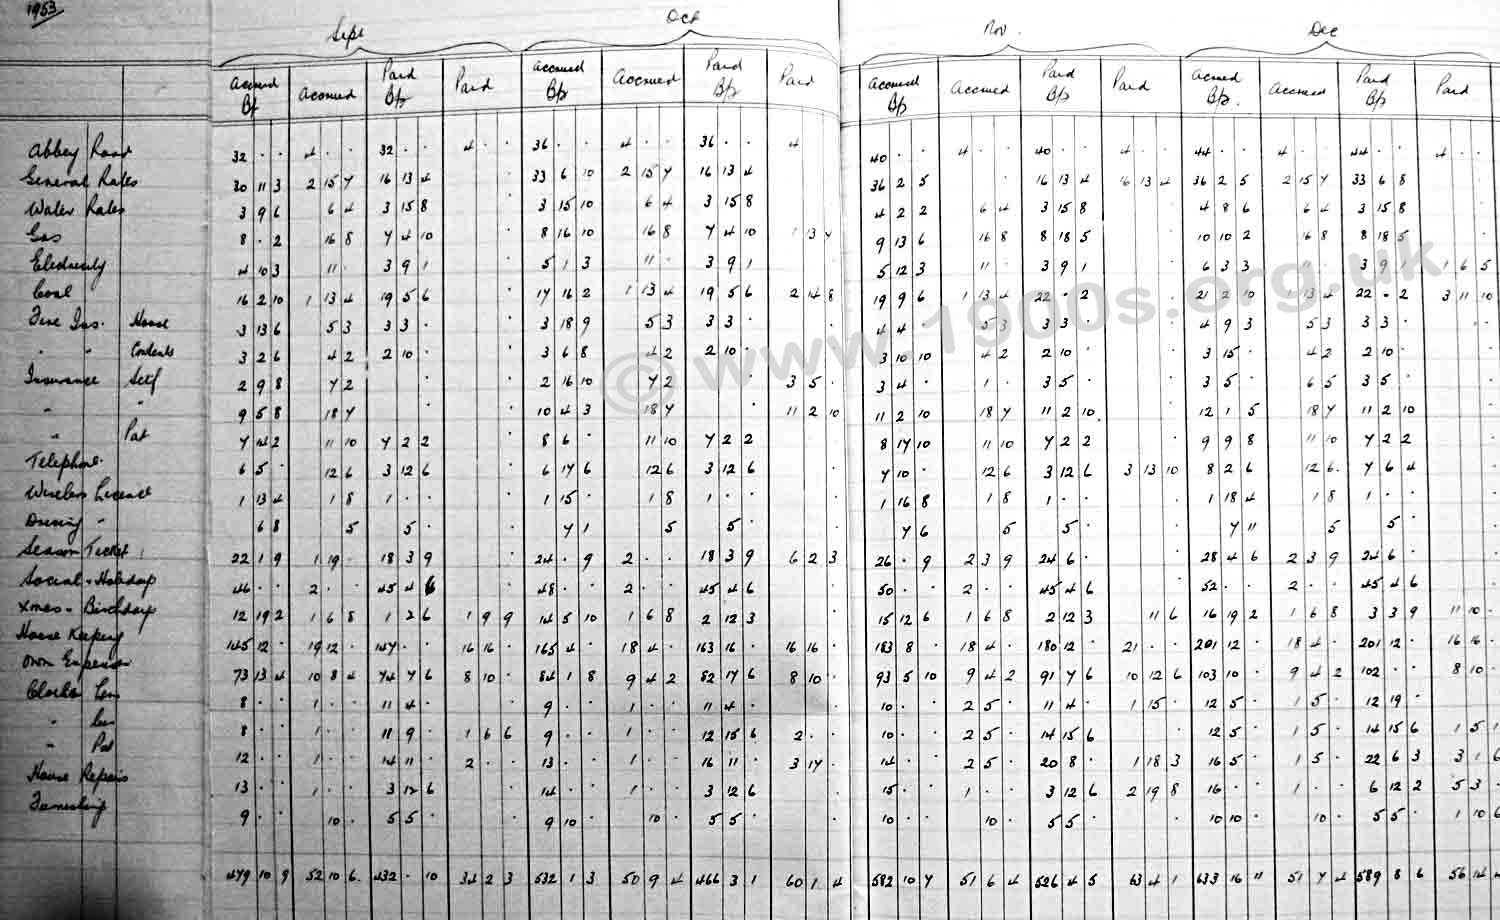 Account sheet for September - December 1953 for a typical British working class family, providing insights into the cost of living in the middle of the 20th century and rates of inflation